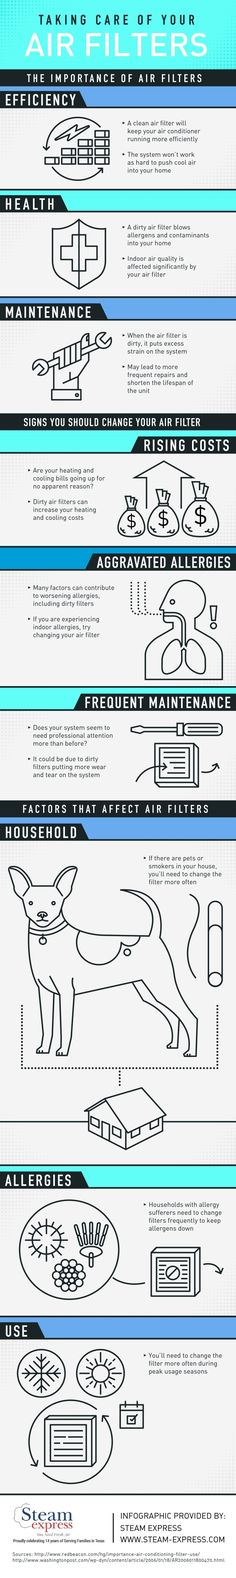 Changing your air filter can help your air conditioner run more efficiently! Take a look at this infographic about air conditioning repair in Houston to learn more about air filters and how they can affect your indoor air quality.